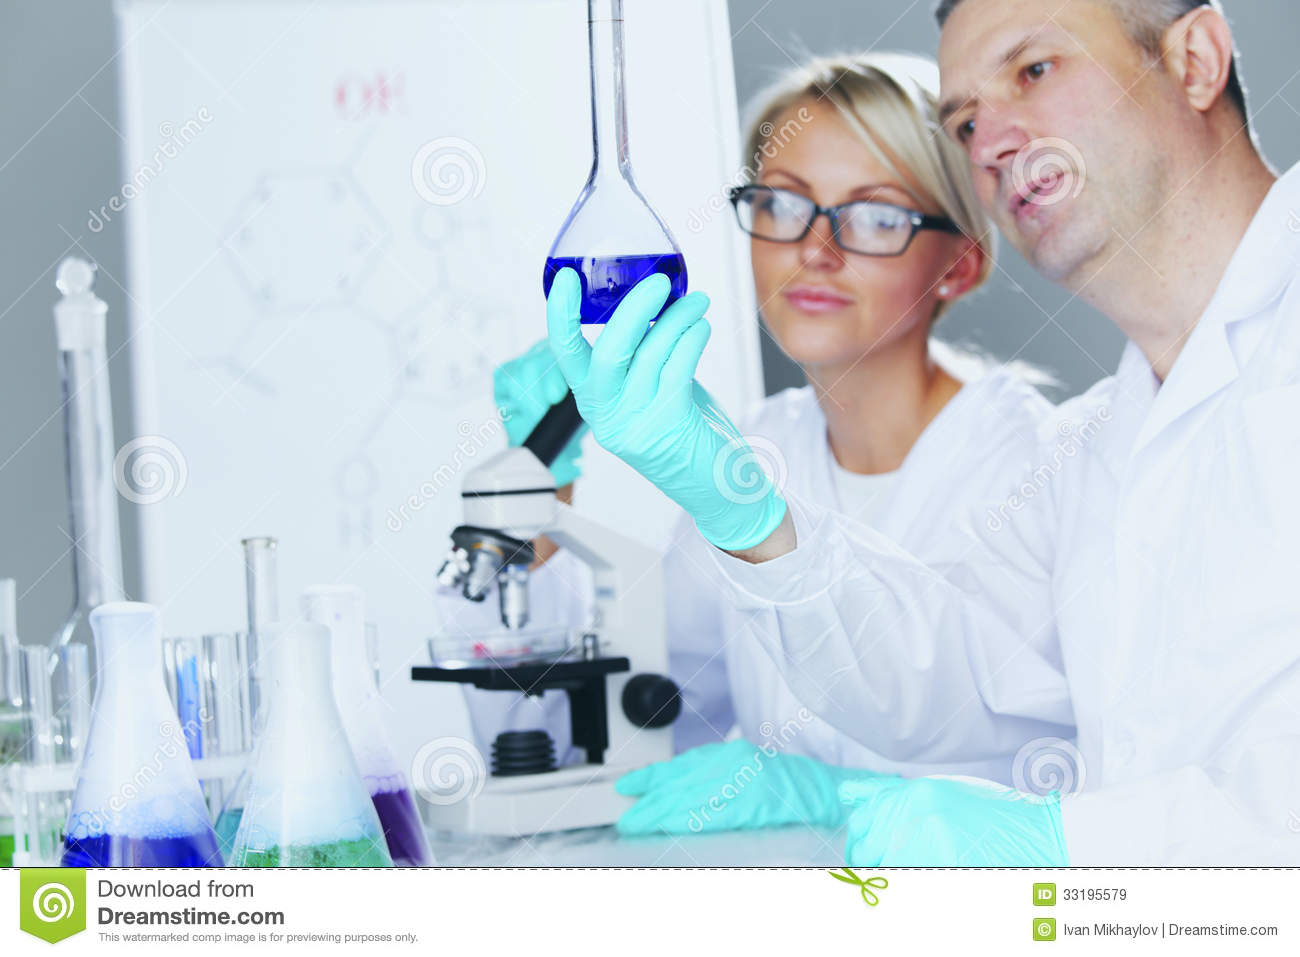 Lab chemistry experiments